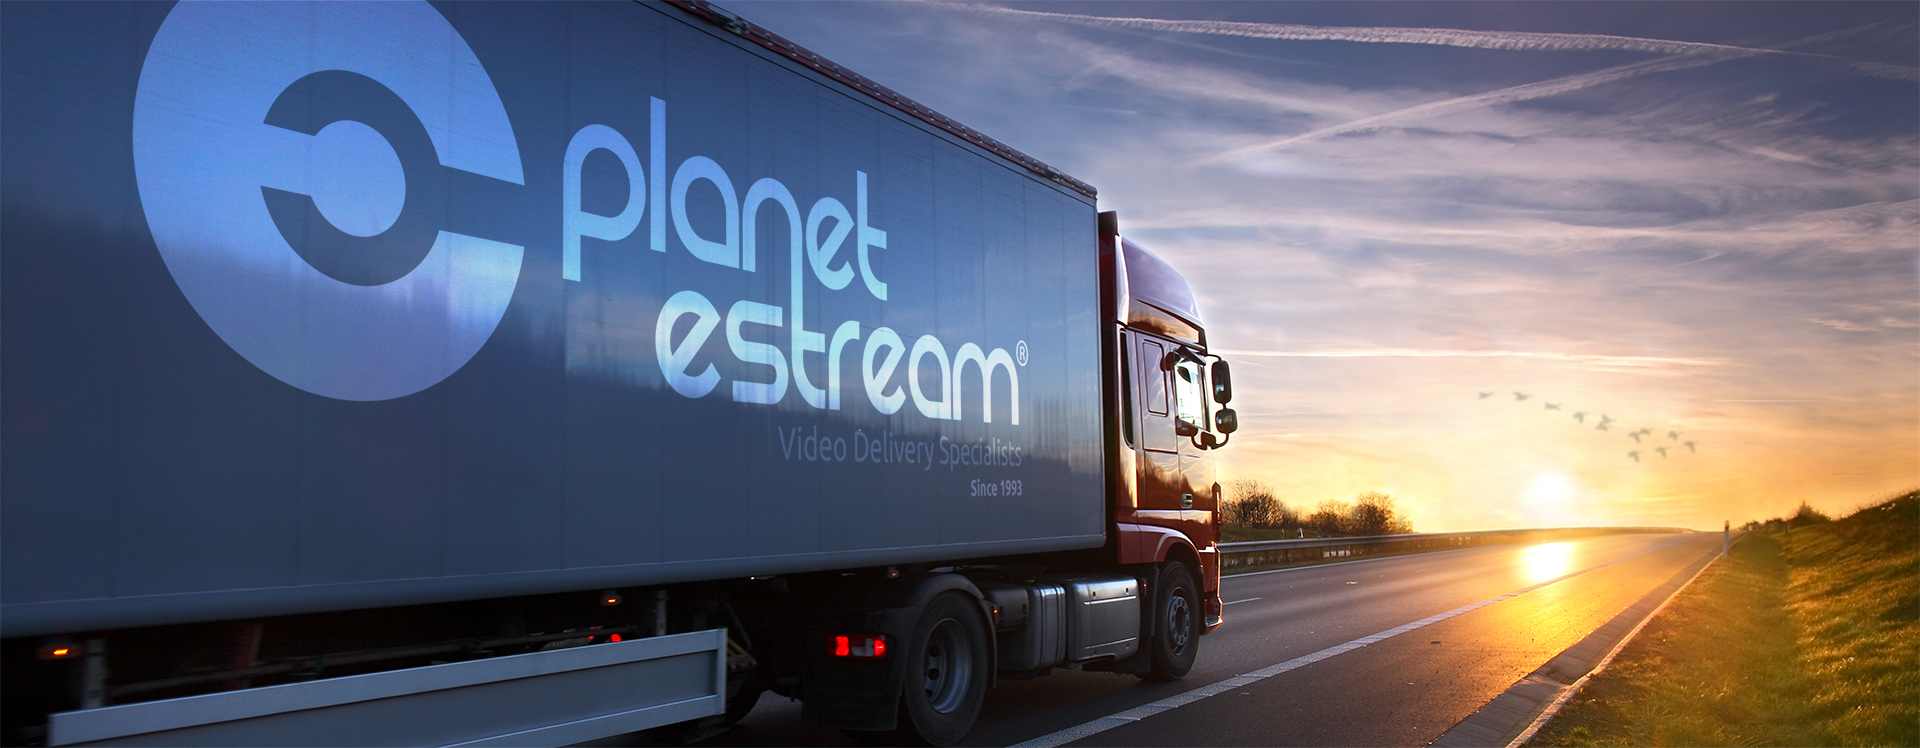 Migrating to Planet eStream is a simple process